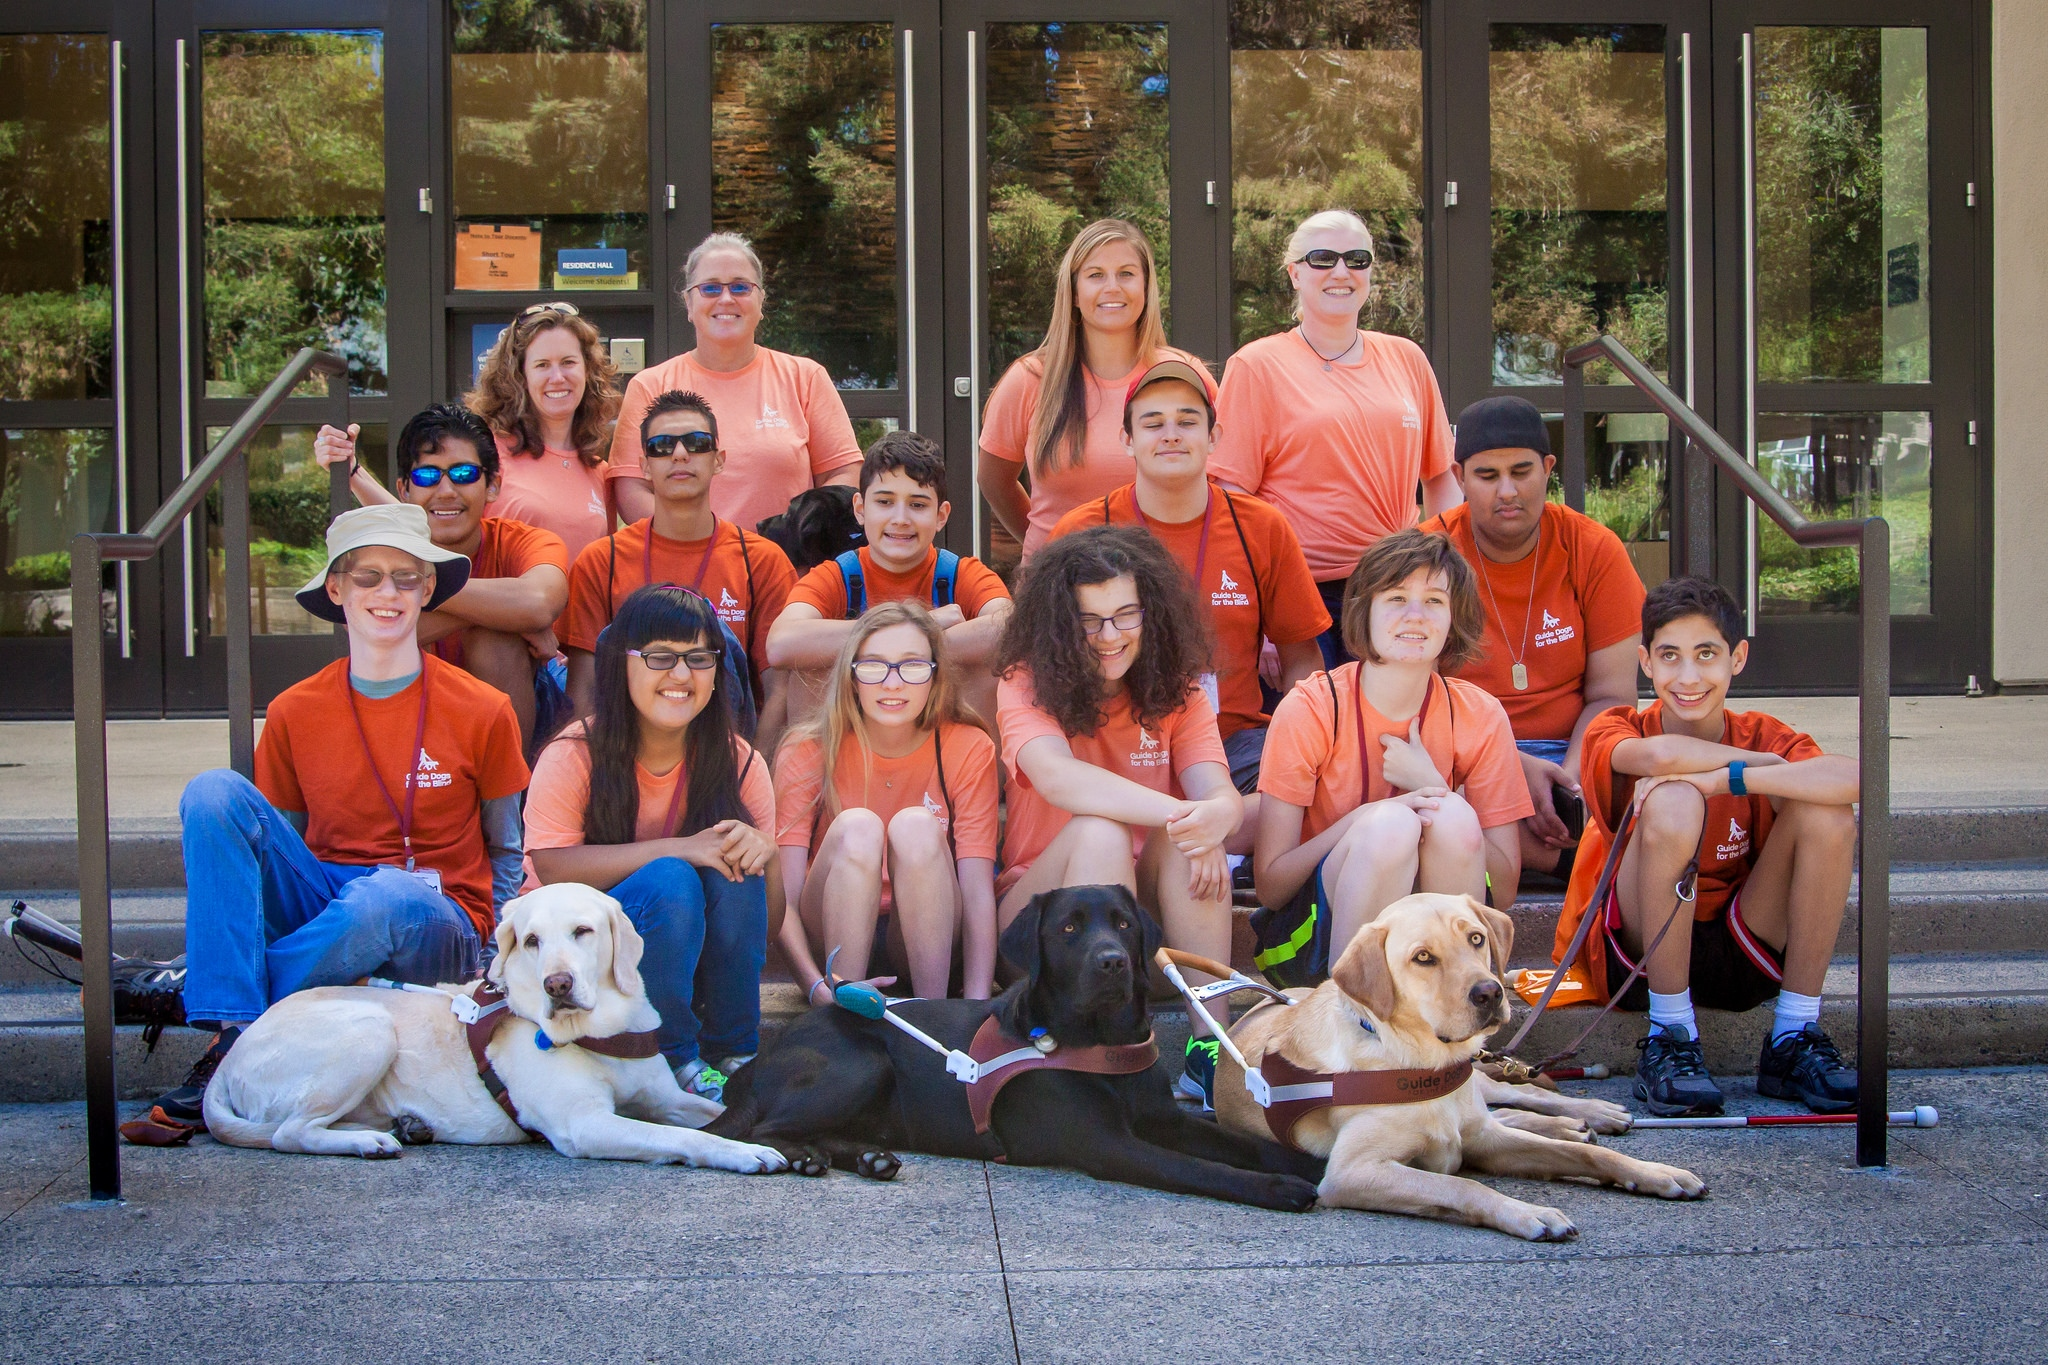 Camp GDB group photo, with campers, GDB staff, and dogs.